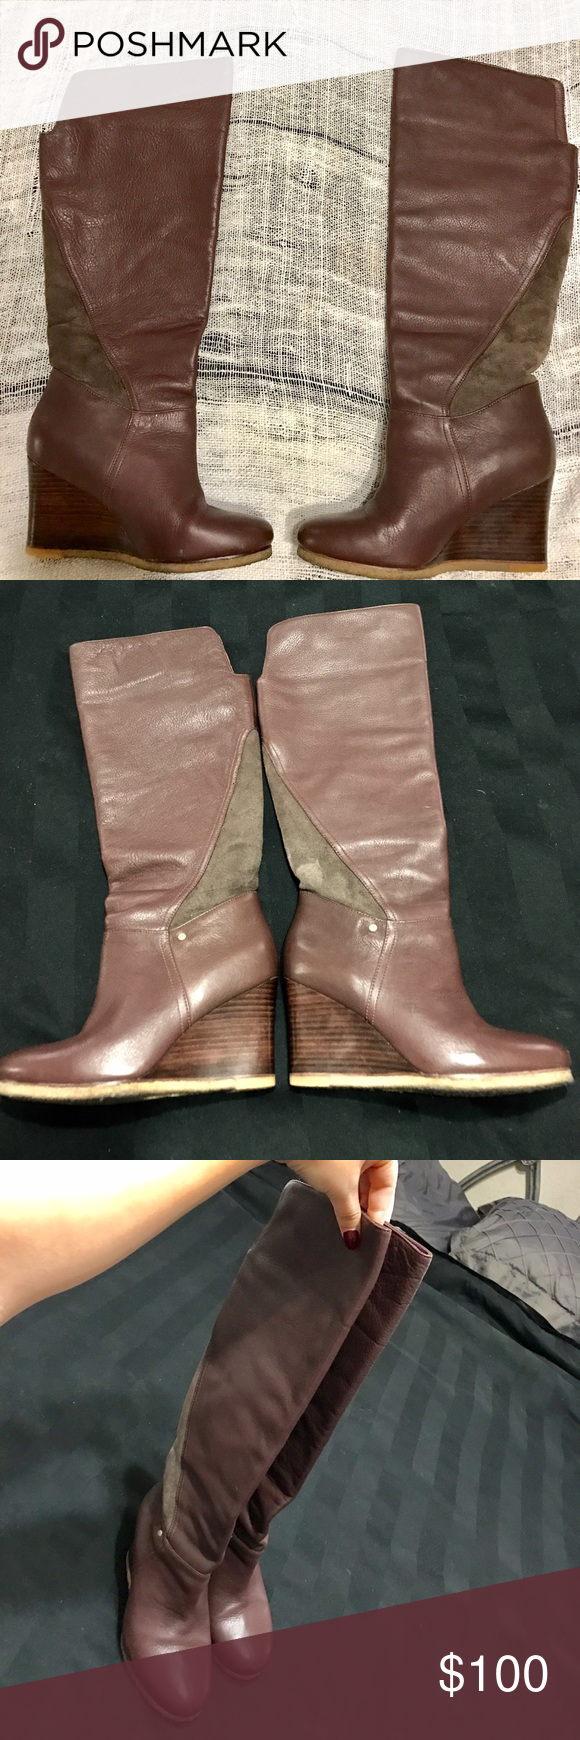 bb5c1858b941 Ugg Ravenna Leather Boots Size 7.5